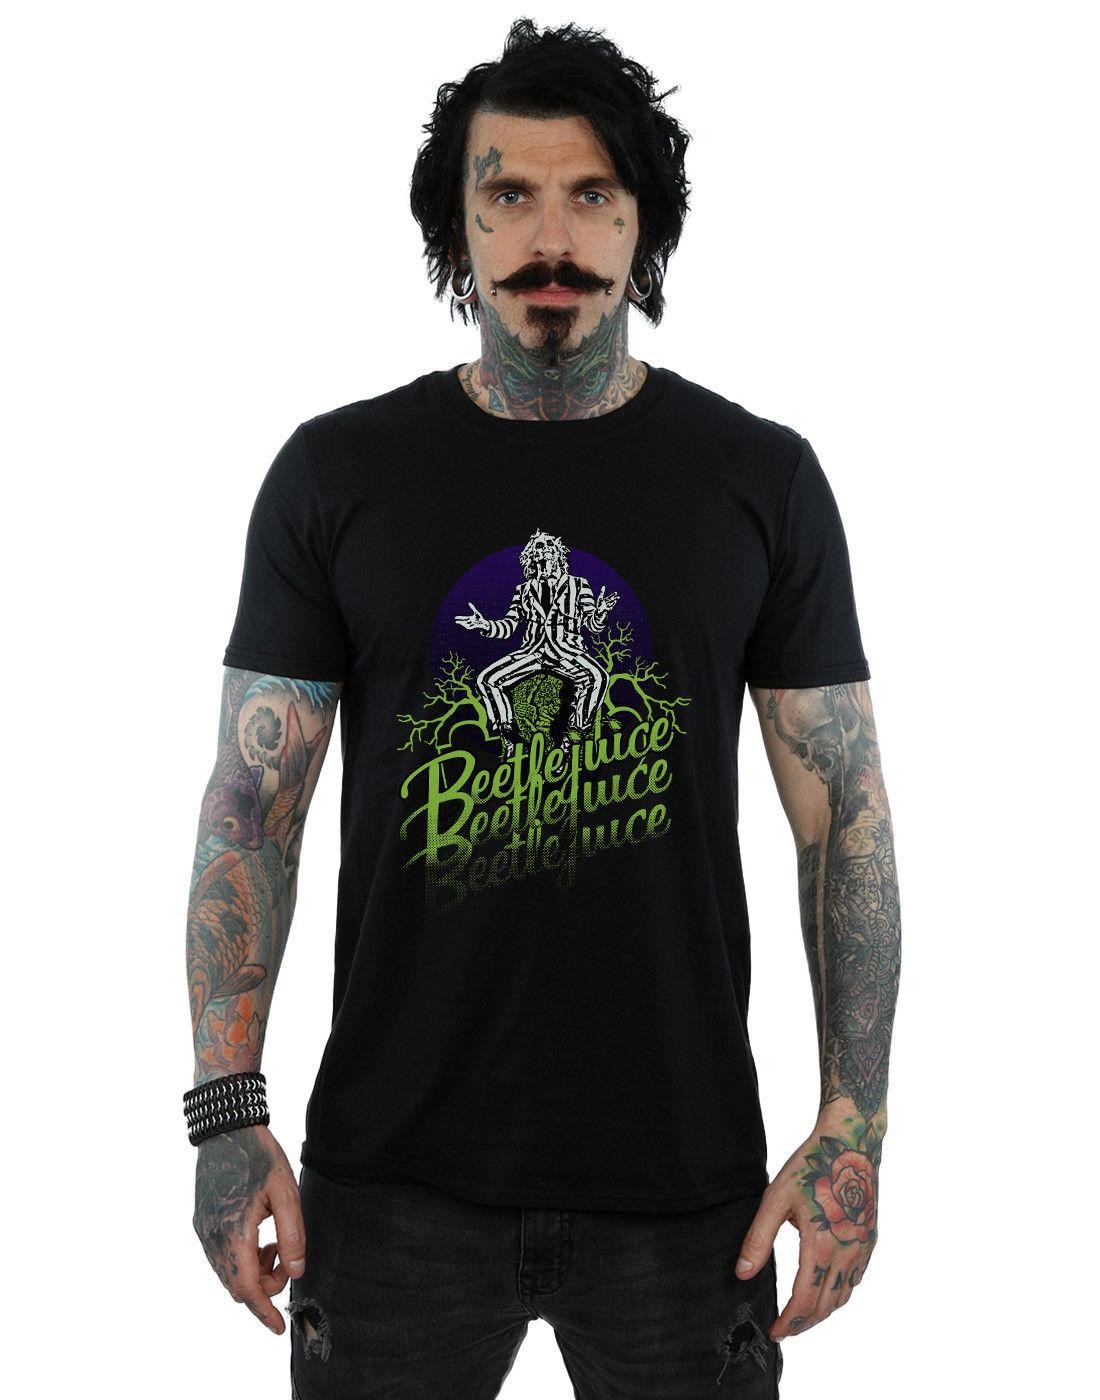 Beetlejuice Men s Faded Pose T-Shirt Casual Plus Size T-Shirts Hip Hop  Style Tops Tee S-3Xl